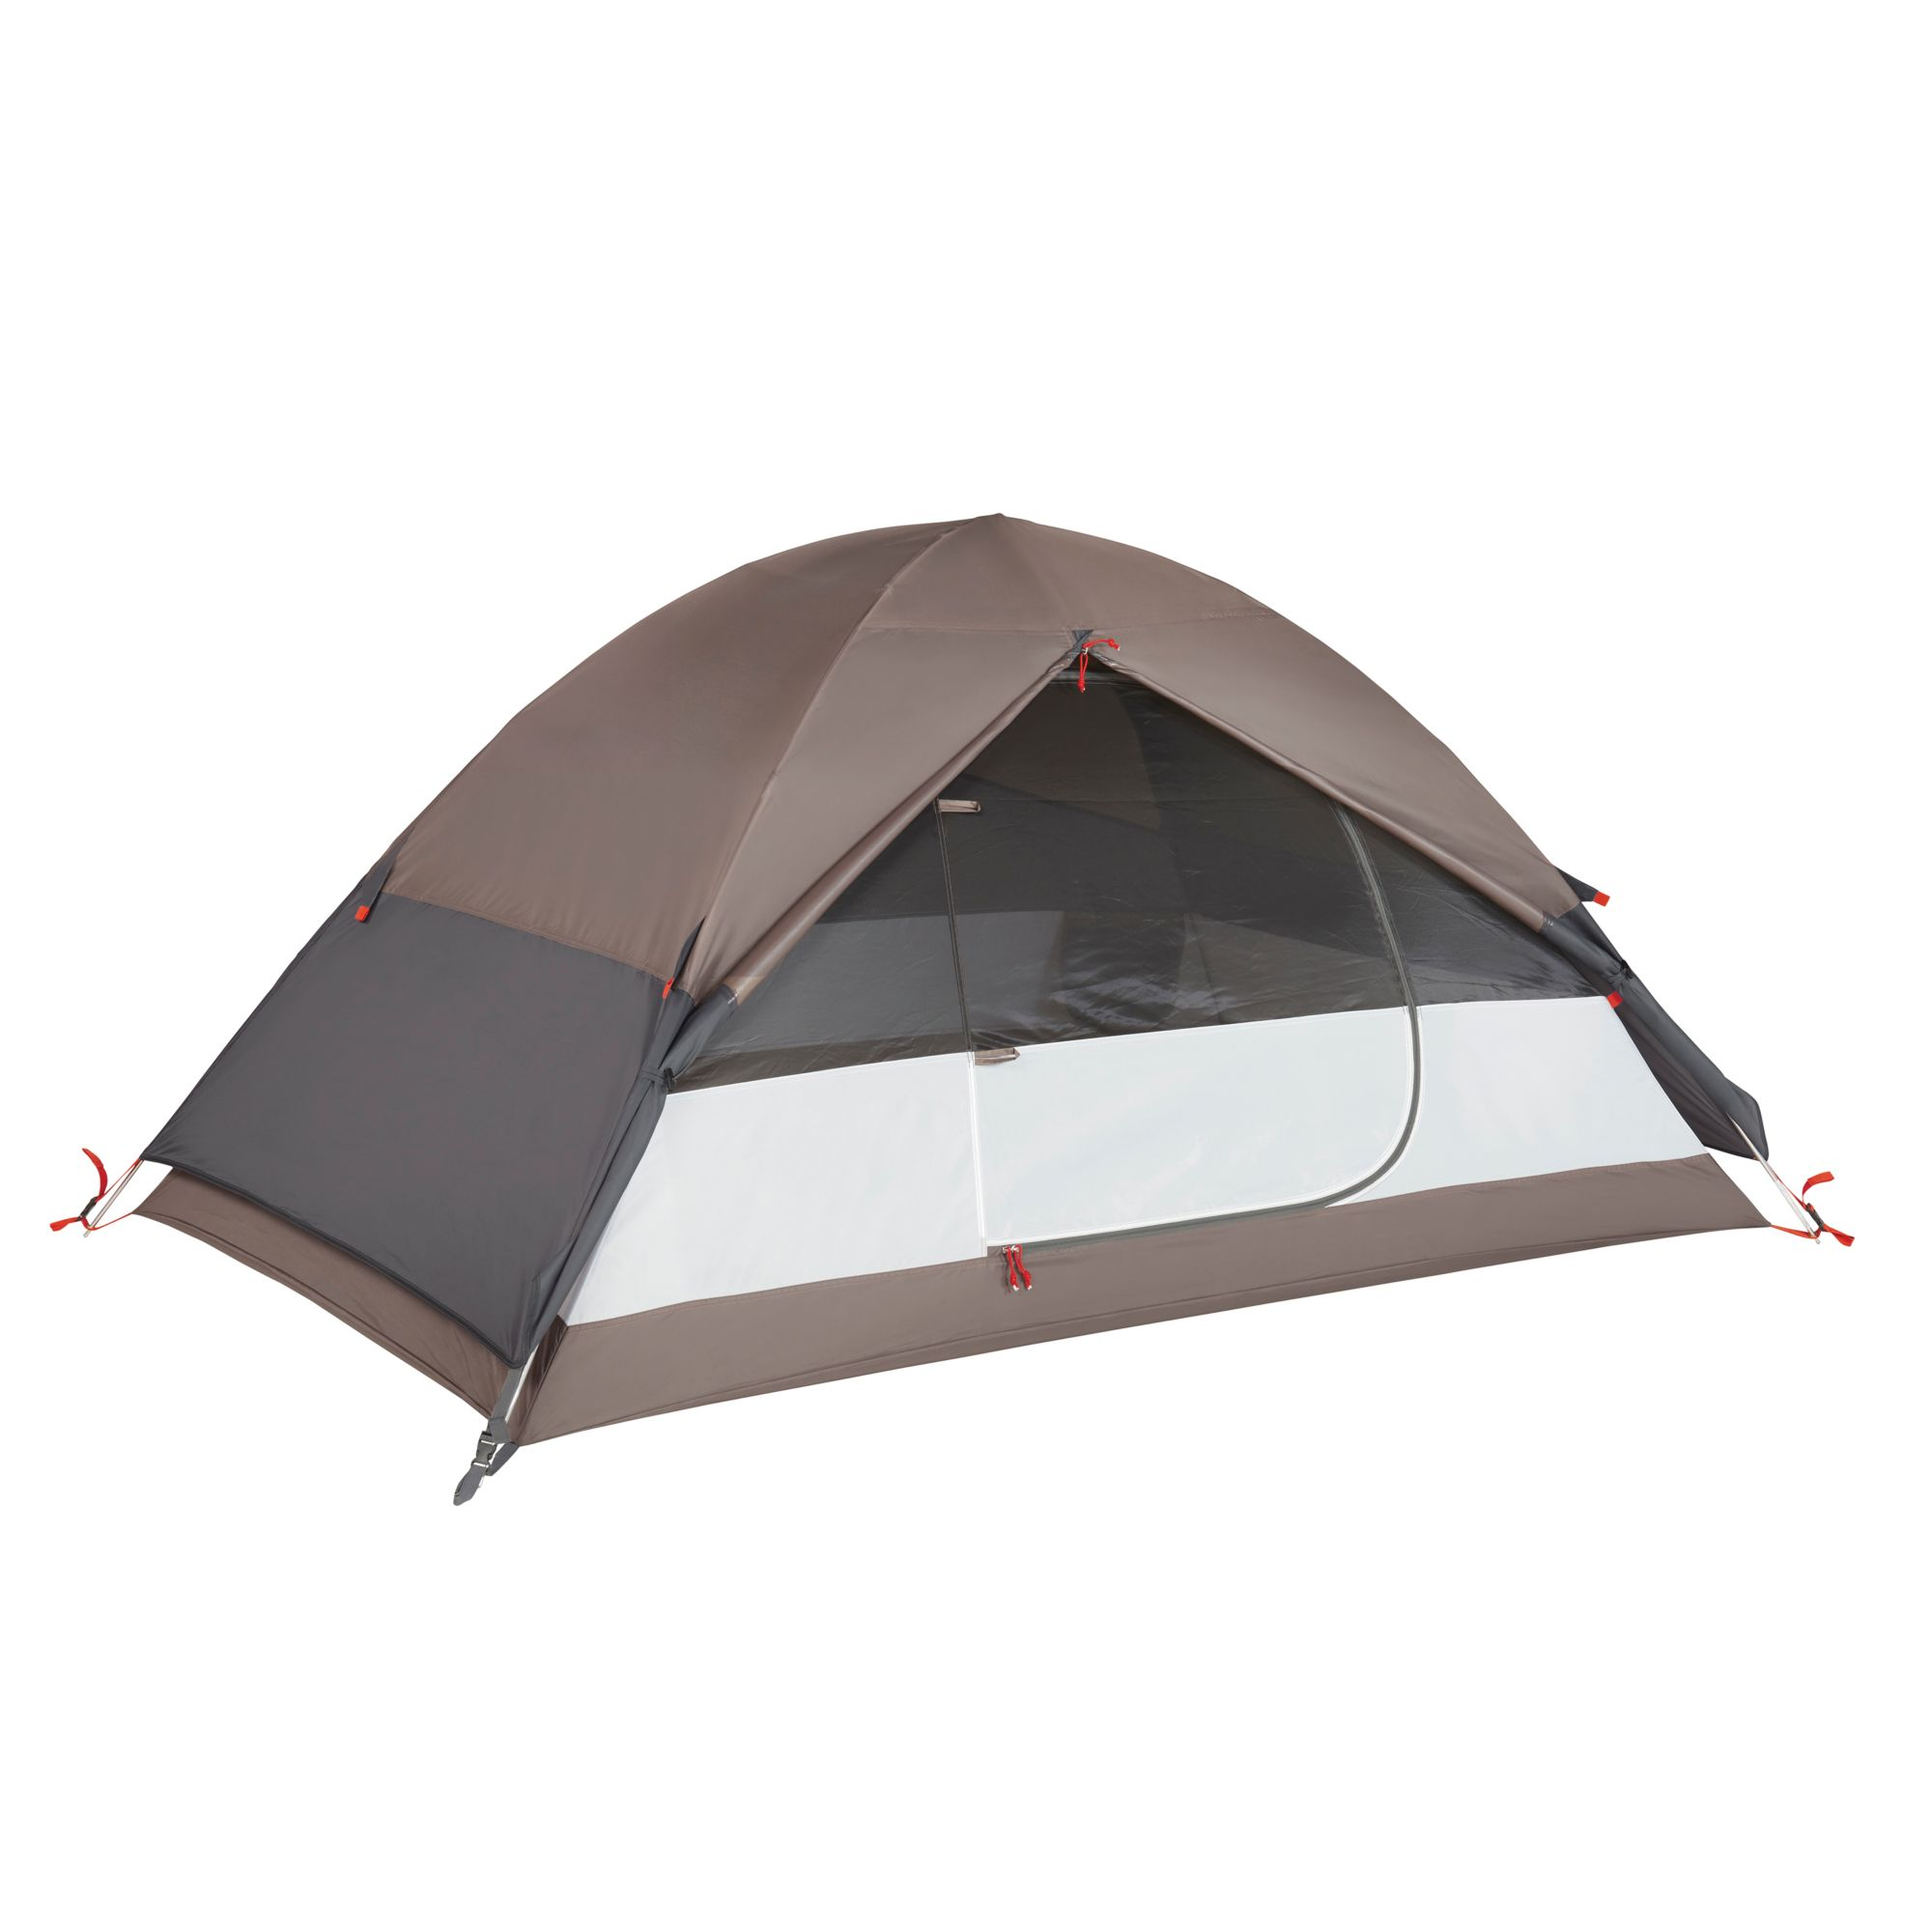 noImageFound ???  sc 1 st  DICKu0027S Sporting Goods & Kelty Circuit 2 Person Tent | DICKu0027S Sporting Goods